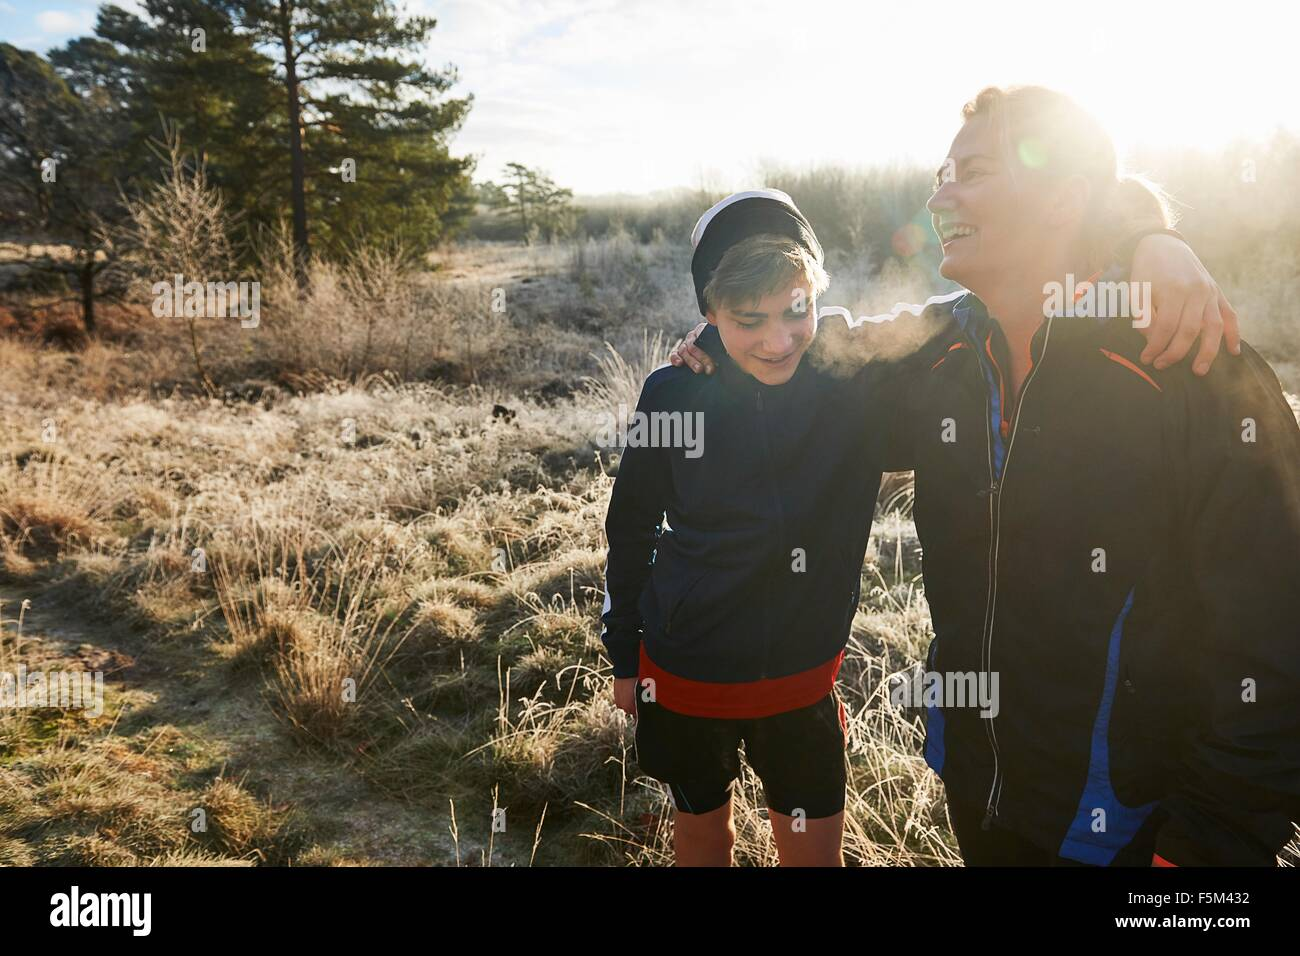 Mother and son on grassland wearing sports clothing arms around each other smiling - Stock Image